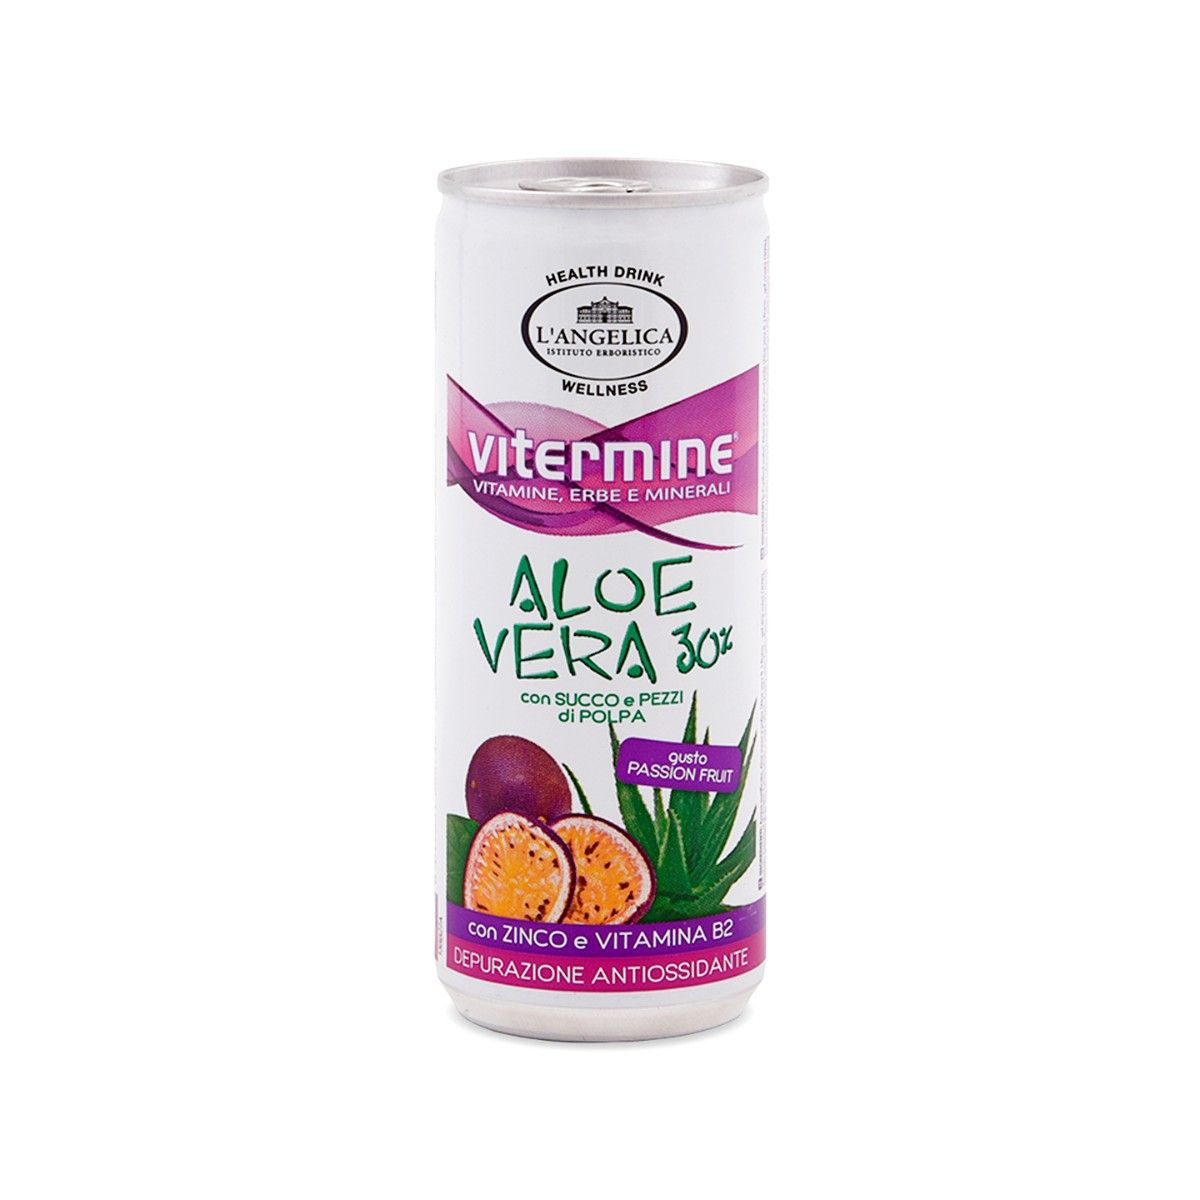 Drink Aloe Vera 30% - Gusto Passion Fruit